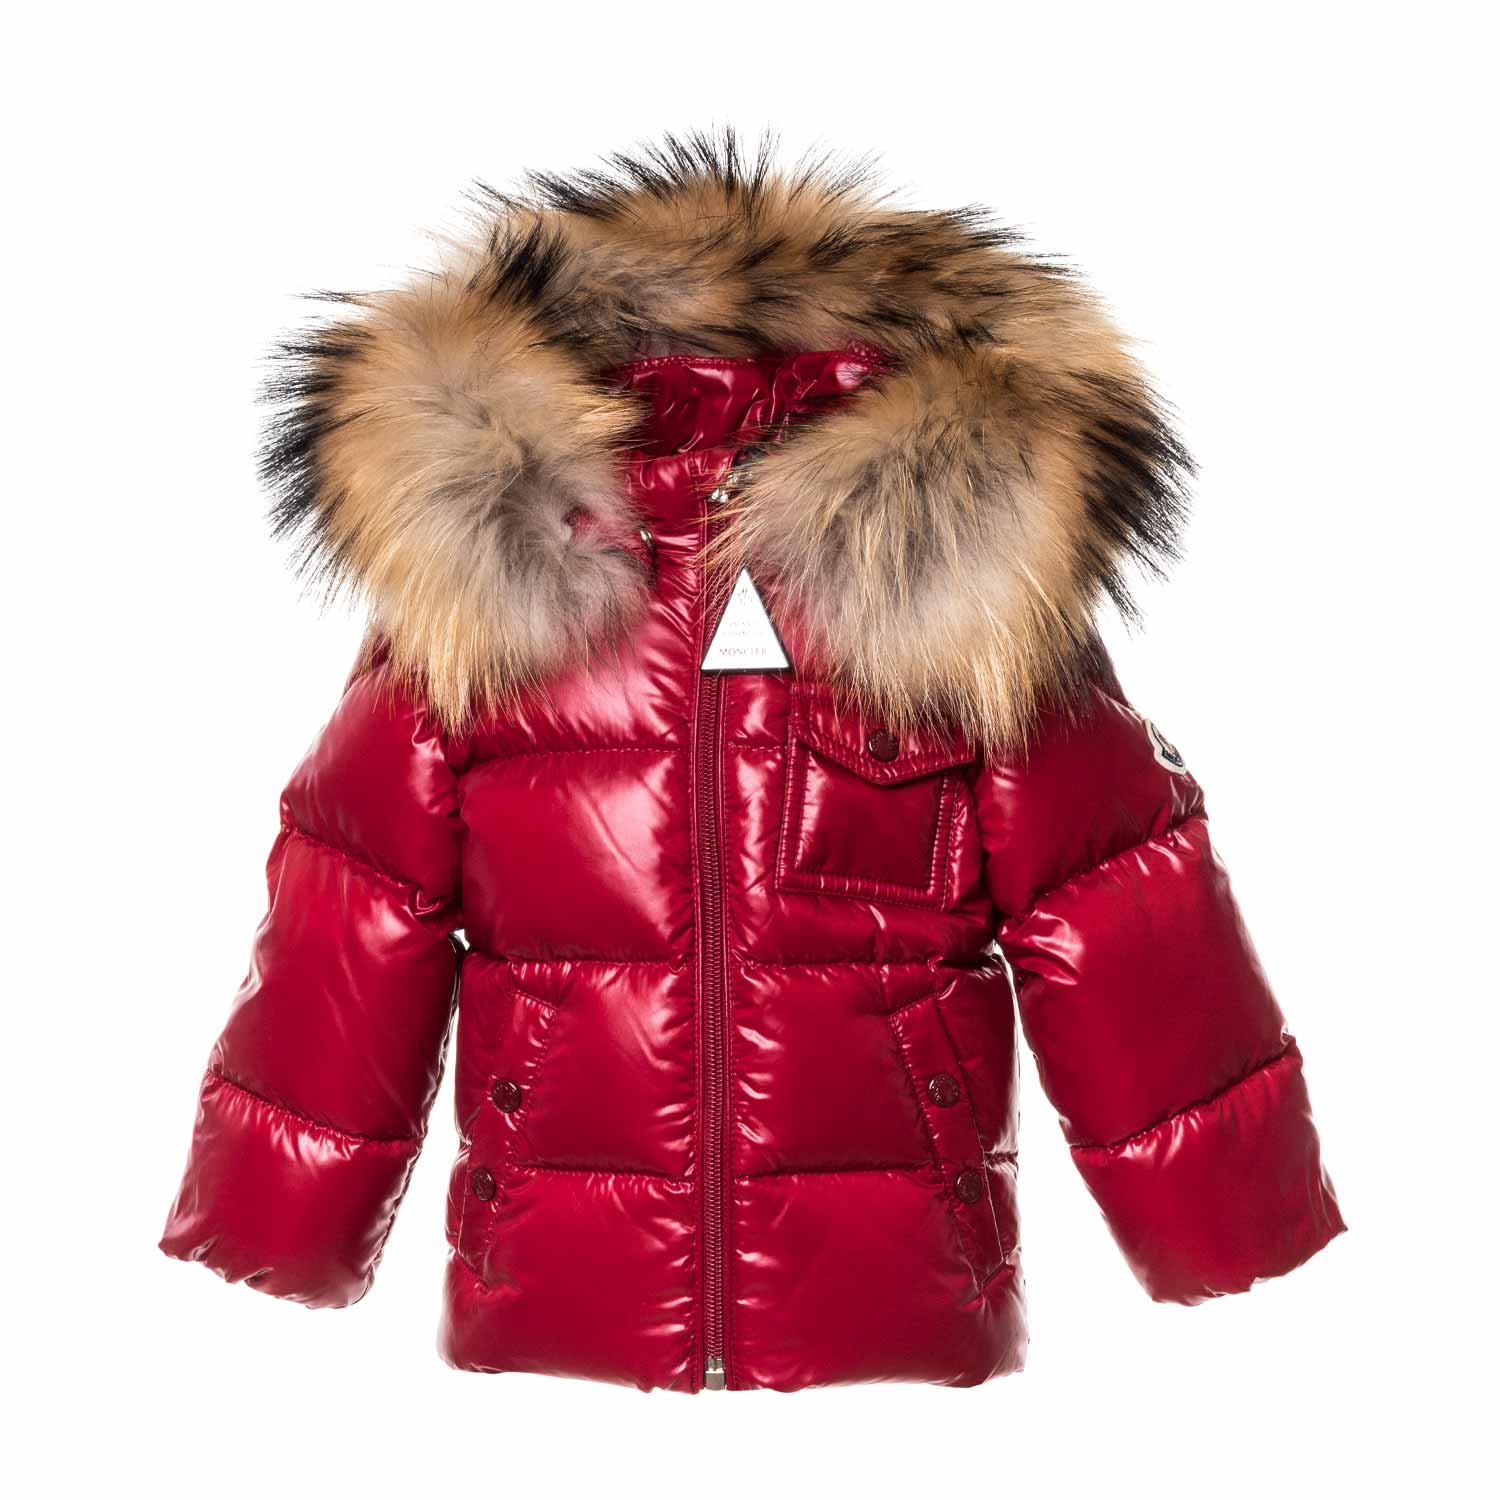 079a3ee2b Moncler - Baby Girl Red K2 Down Coat - annameglio.com shop online